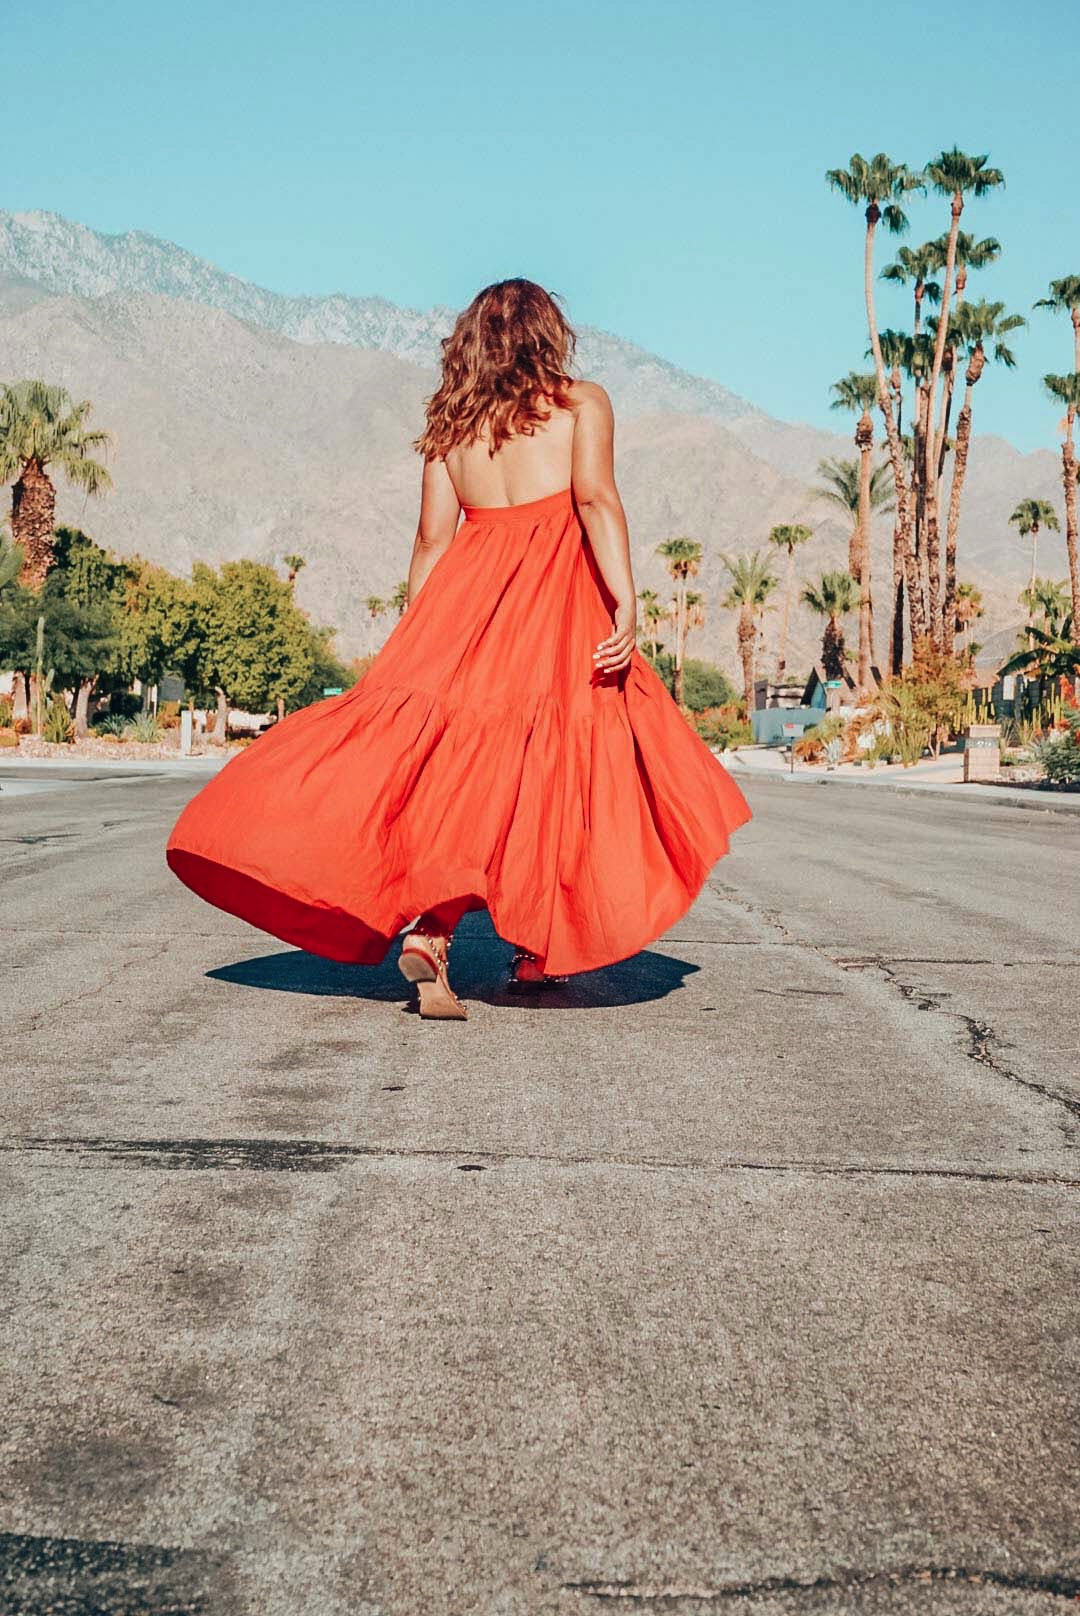 Girl in twirling dress in Palm Springs.